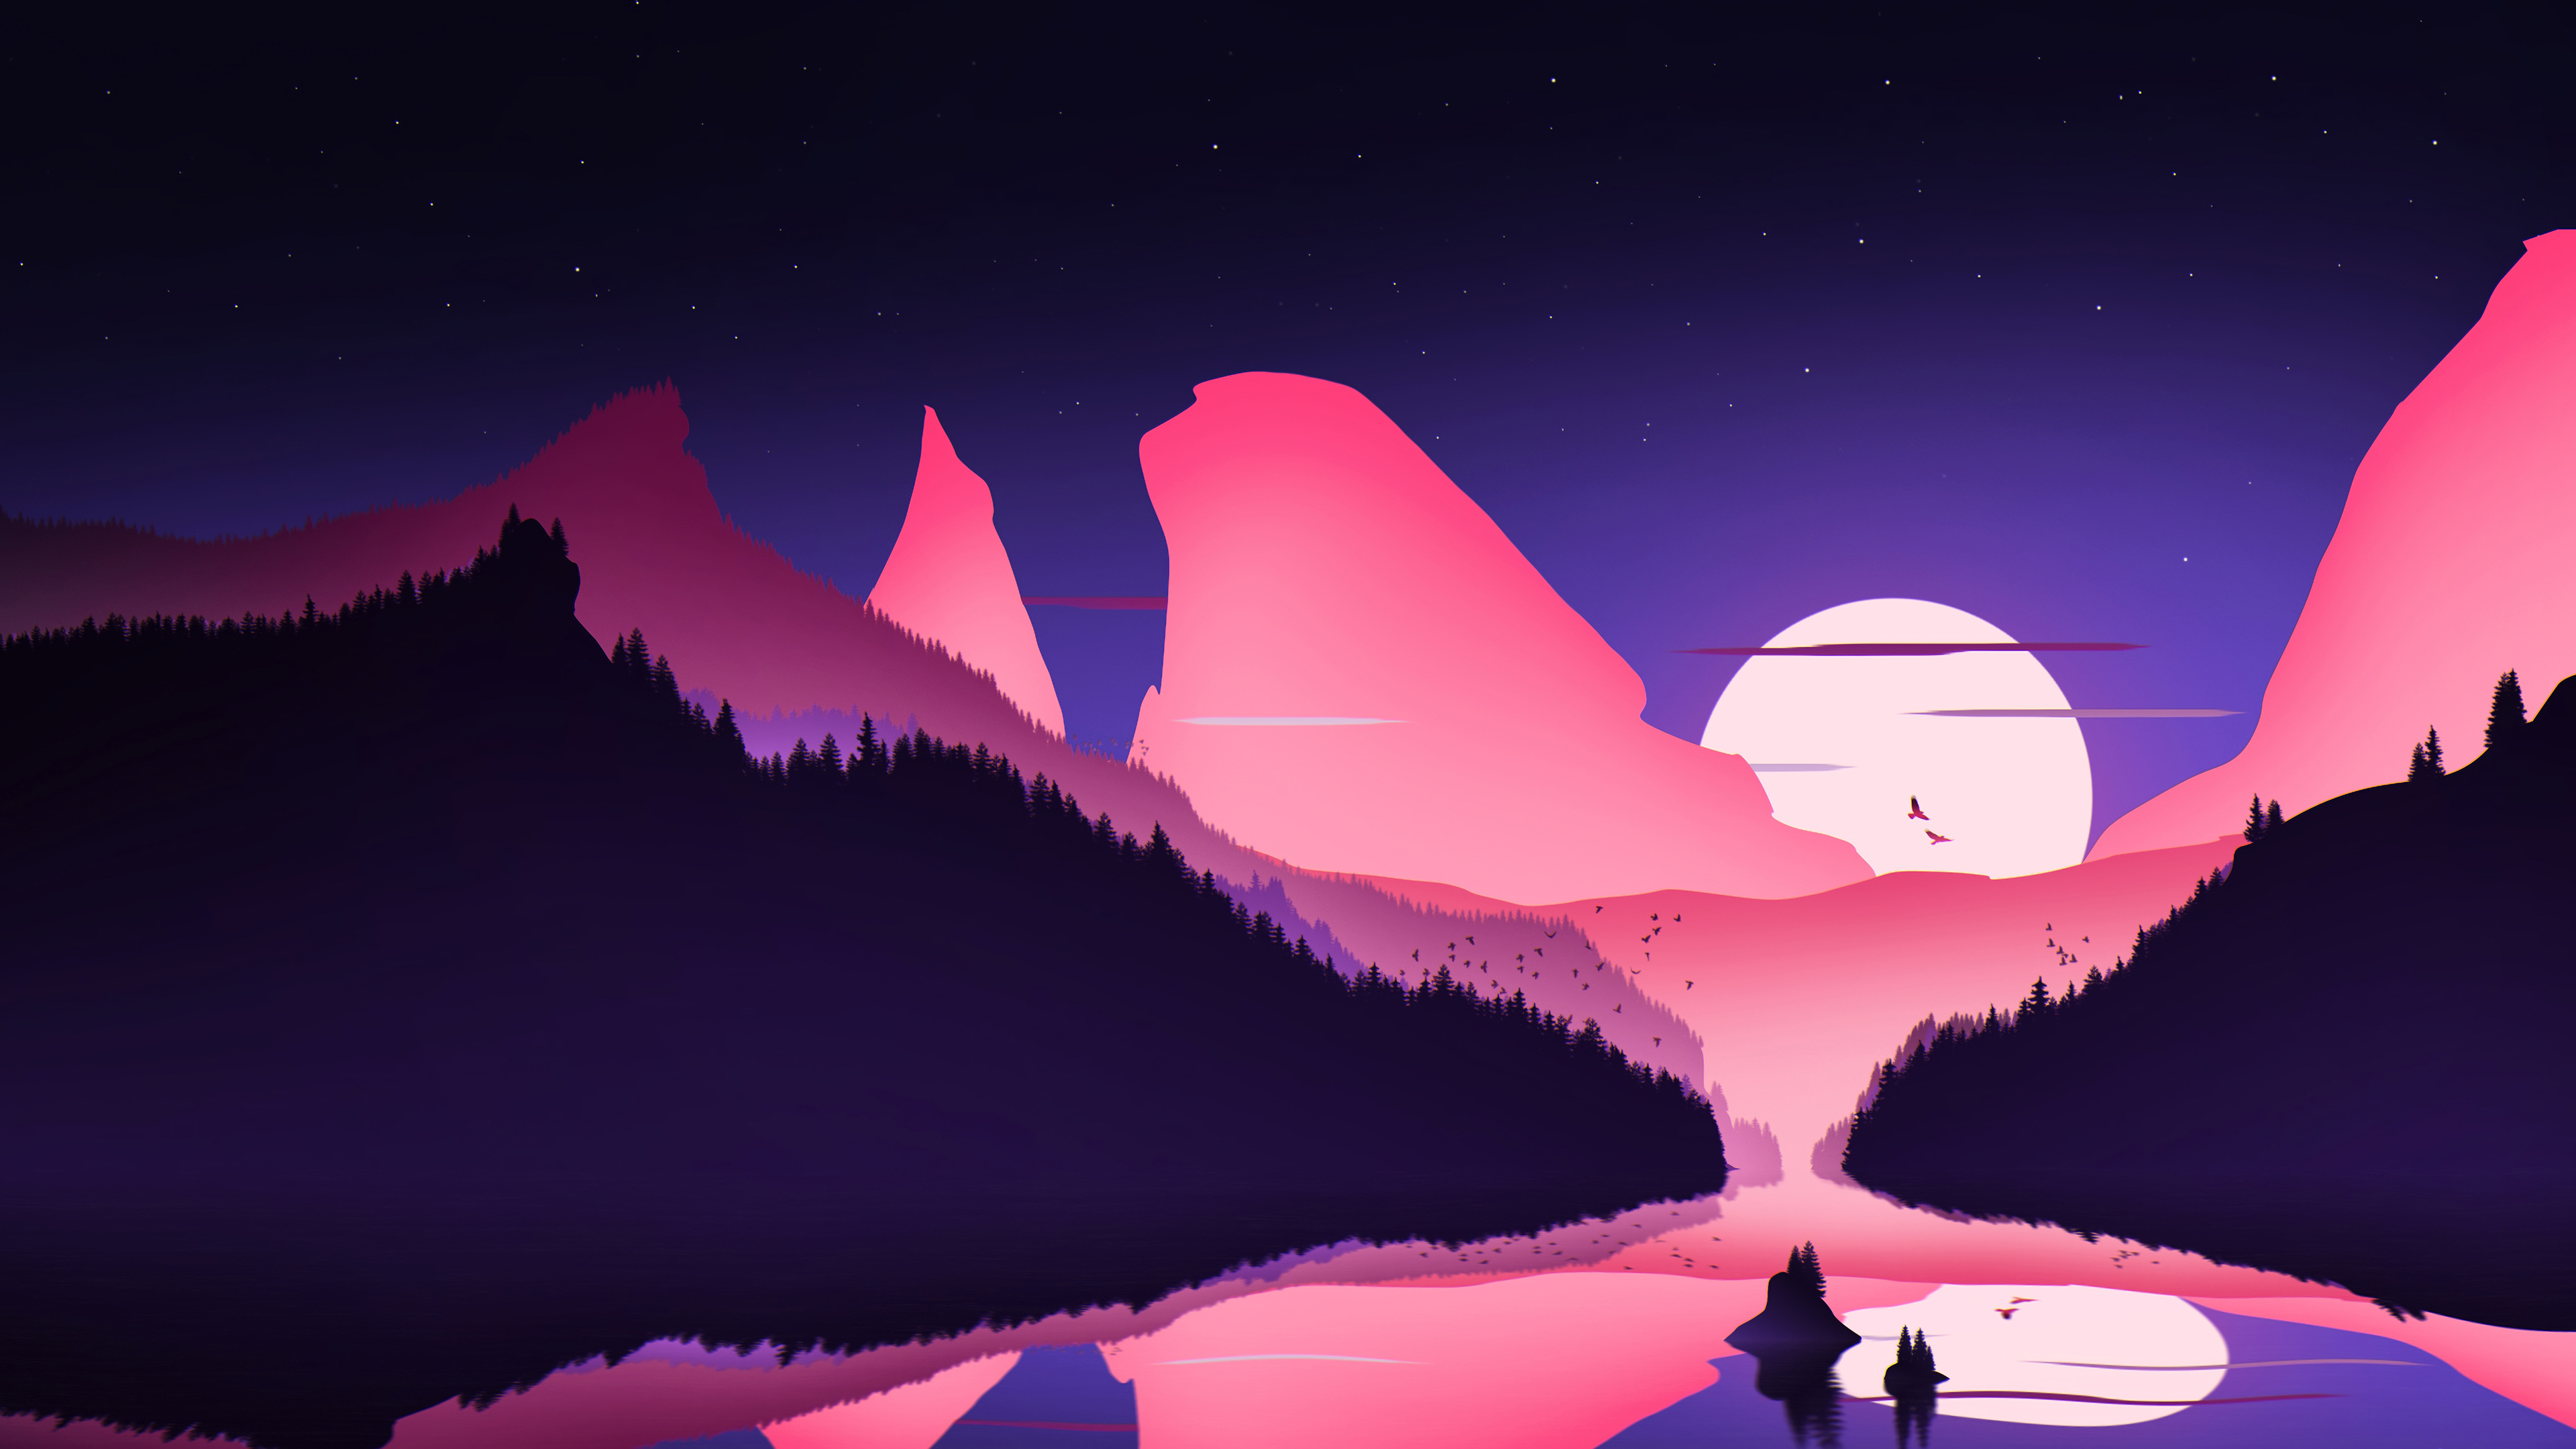 1920x1080 Retro Landscape 4k Laptop Full Hd 1080p Hd 4k Wallpapers Images Backgrounds Photos And Pictures The space vj loop by nplm 1920x1080 full hd, 30 fps. 1920x1080 retro landscape 4k laptop